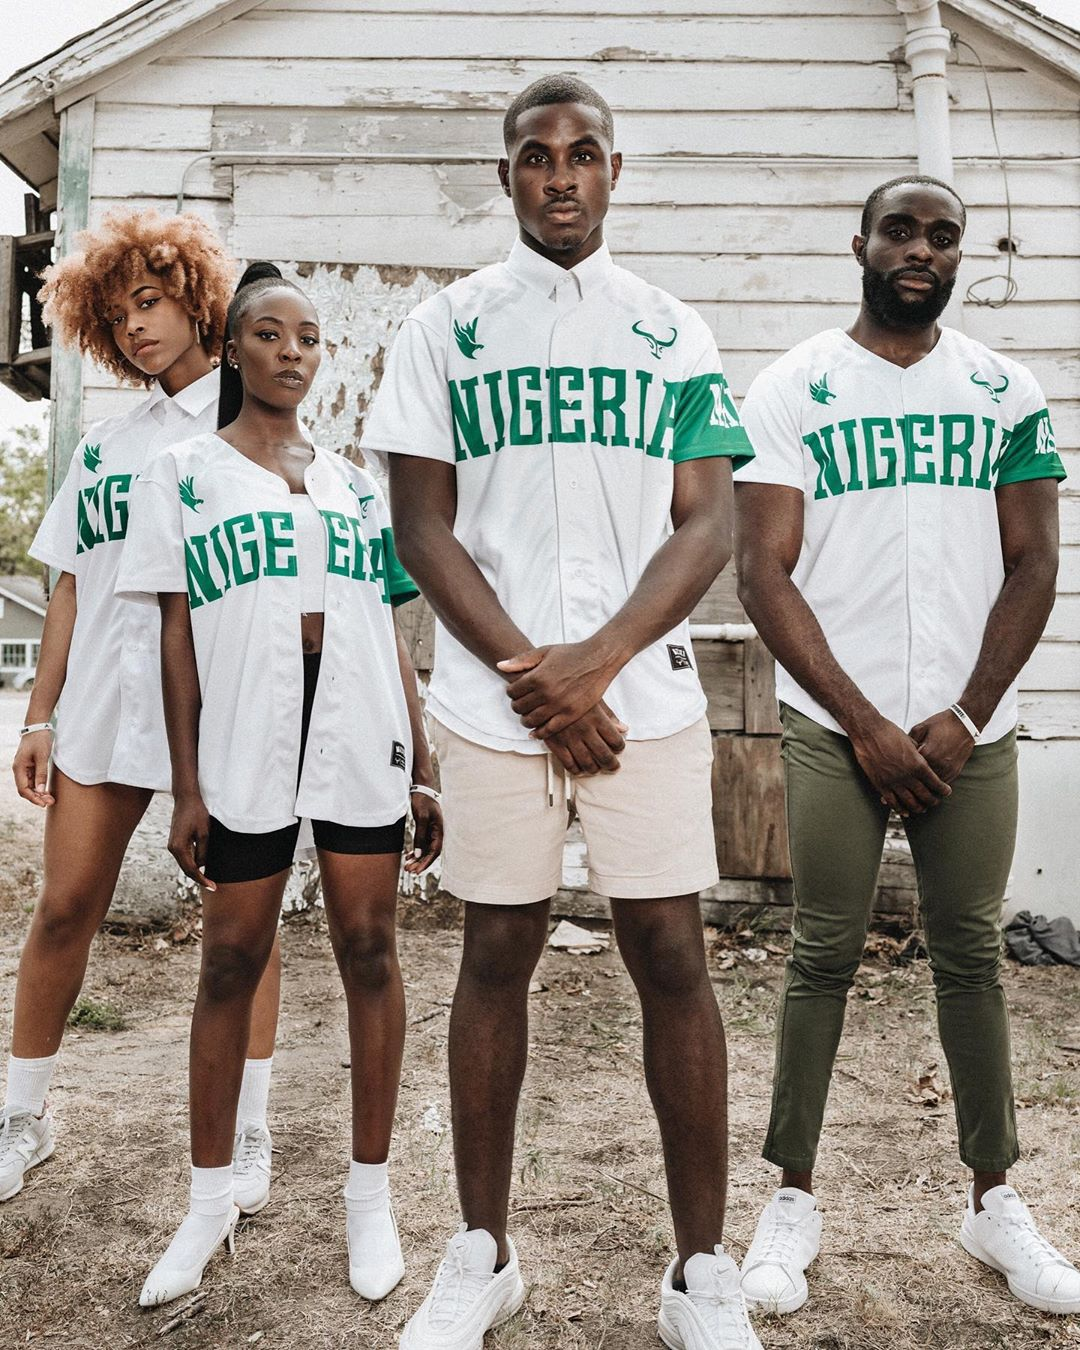 Vogue Profiles Mizizi, The African Jersey Brand Making Waves In The Us